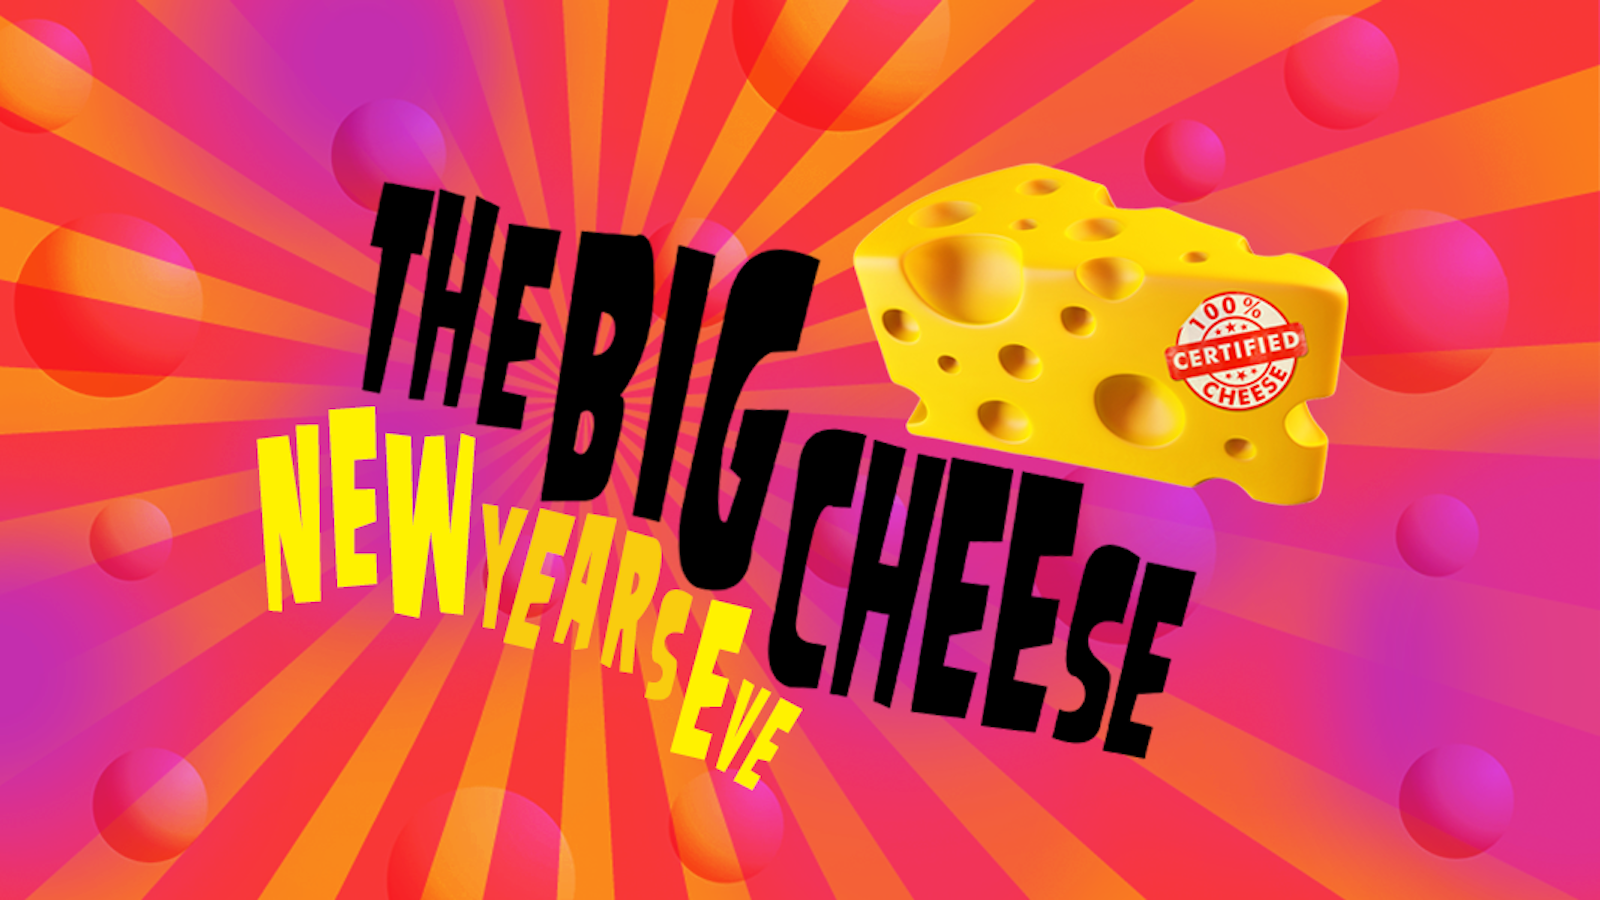 The Big New Years Eve Cheese!